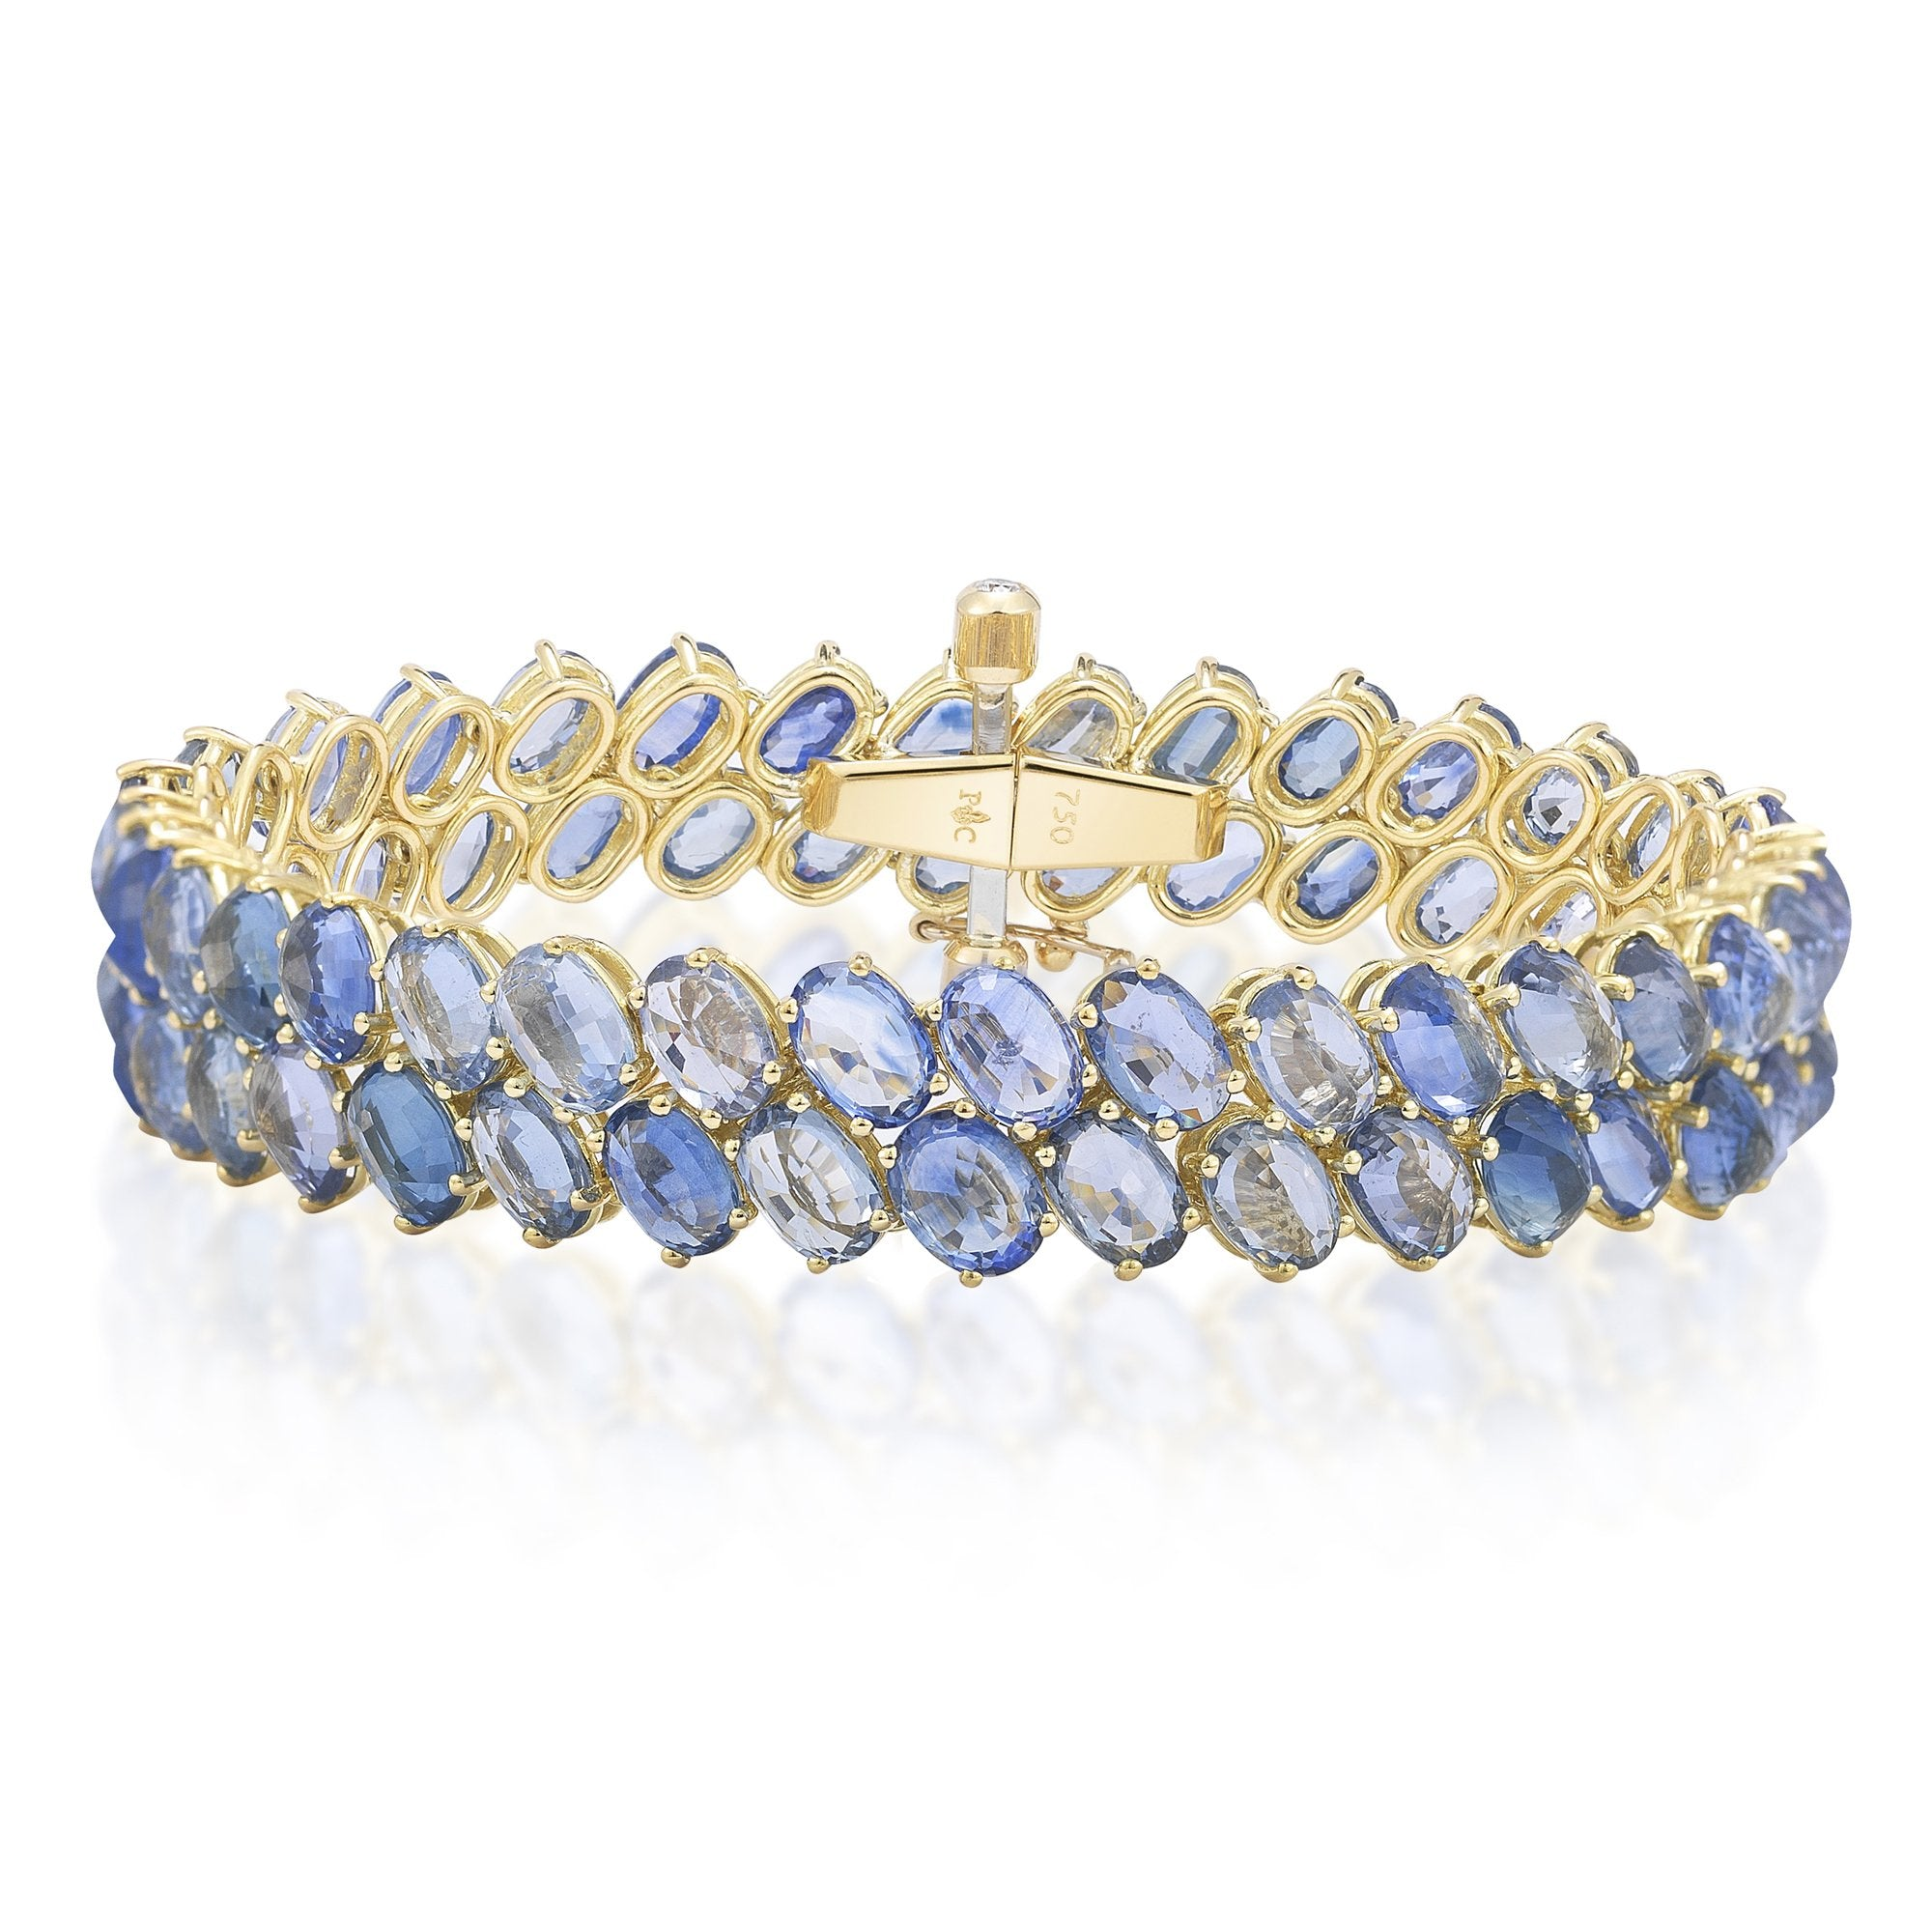 bracelet brilliant cttw cut clear rhodium sapphire plated synthetic